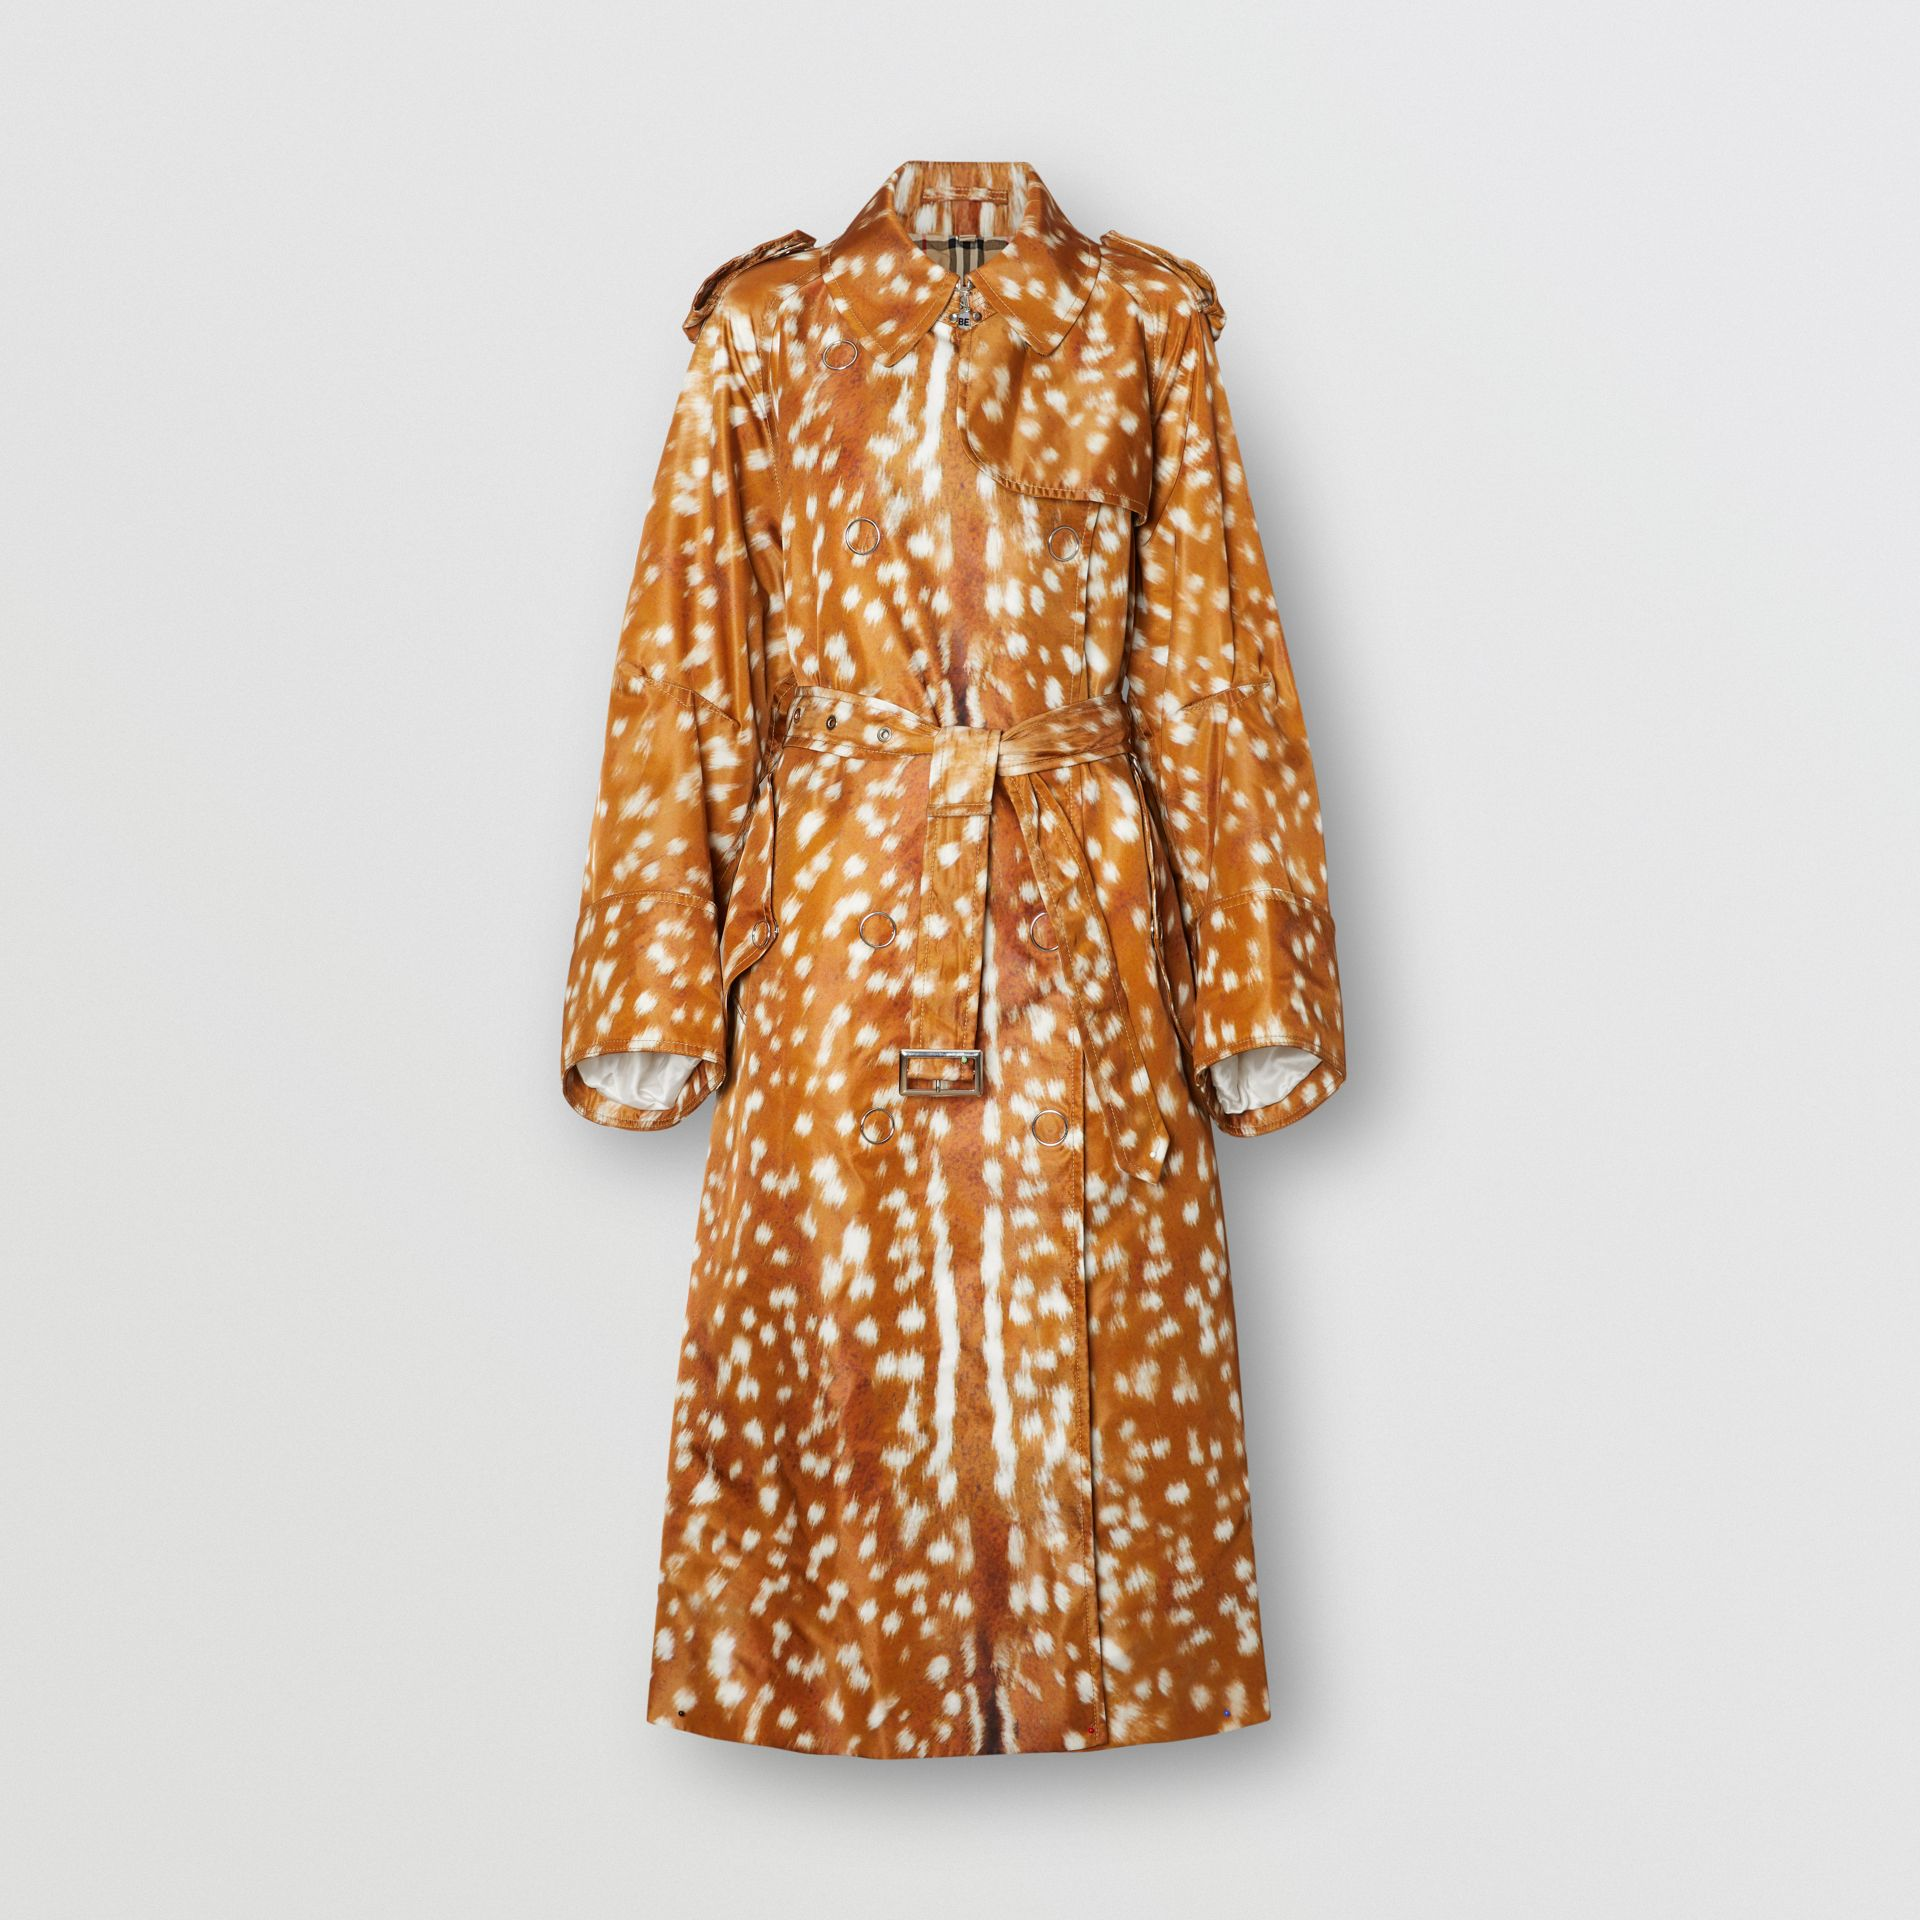 Exaggerated Cuff Deer Print Nylon Trench Coat in Honey - Women | Burberry United Kingdom - gallery image 3